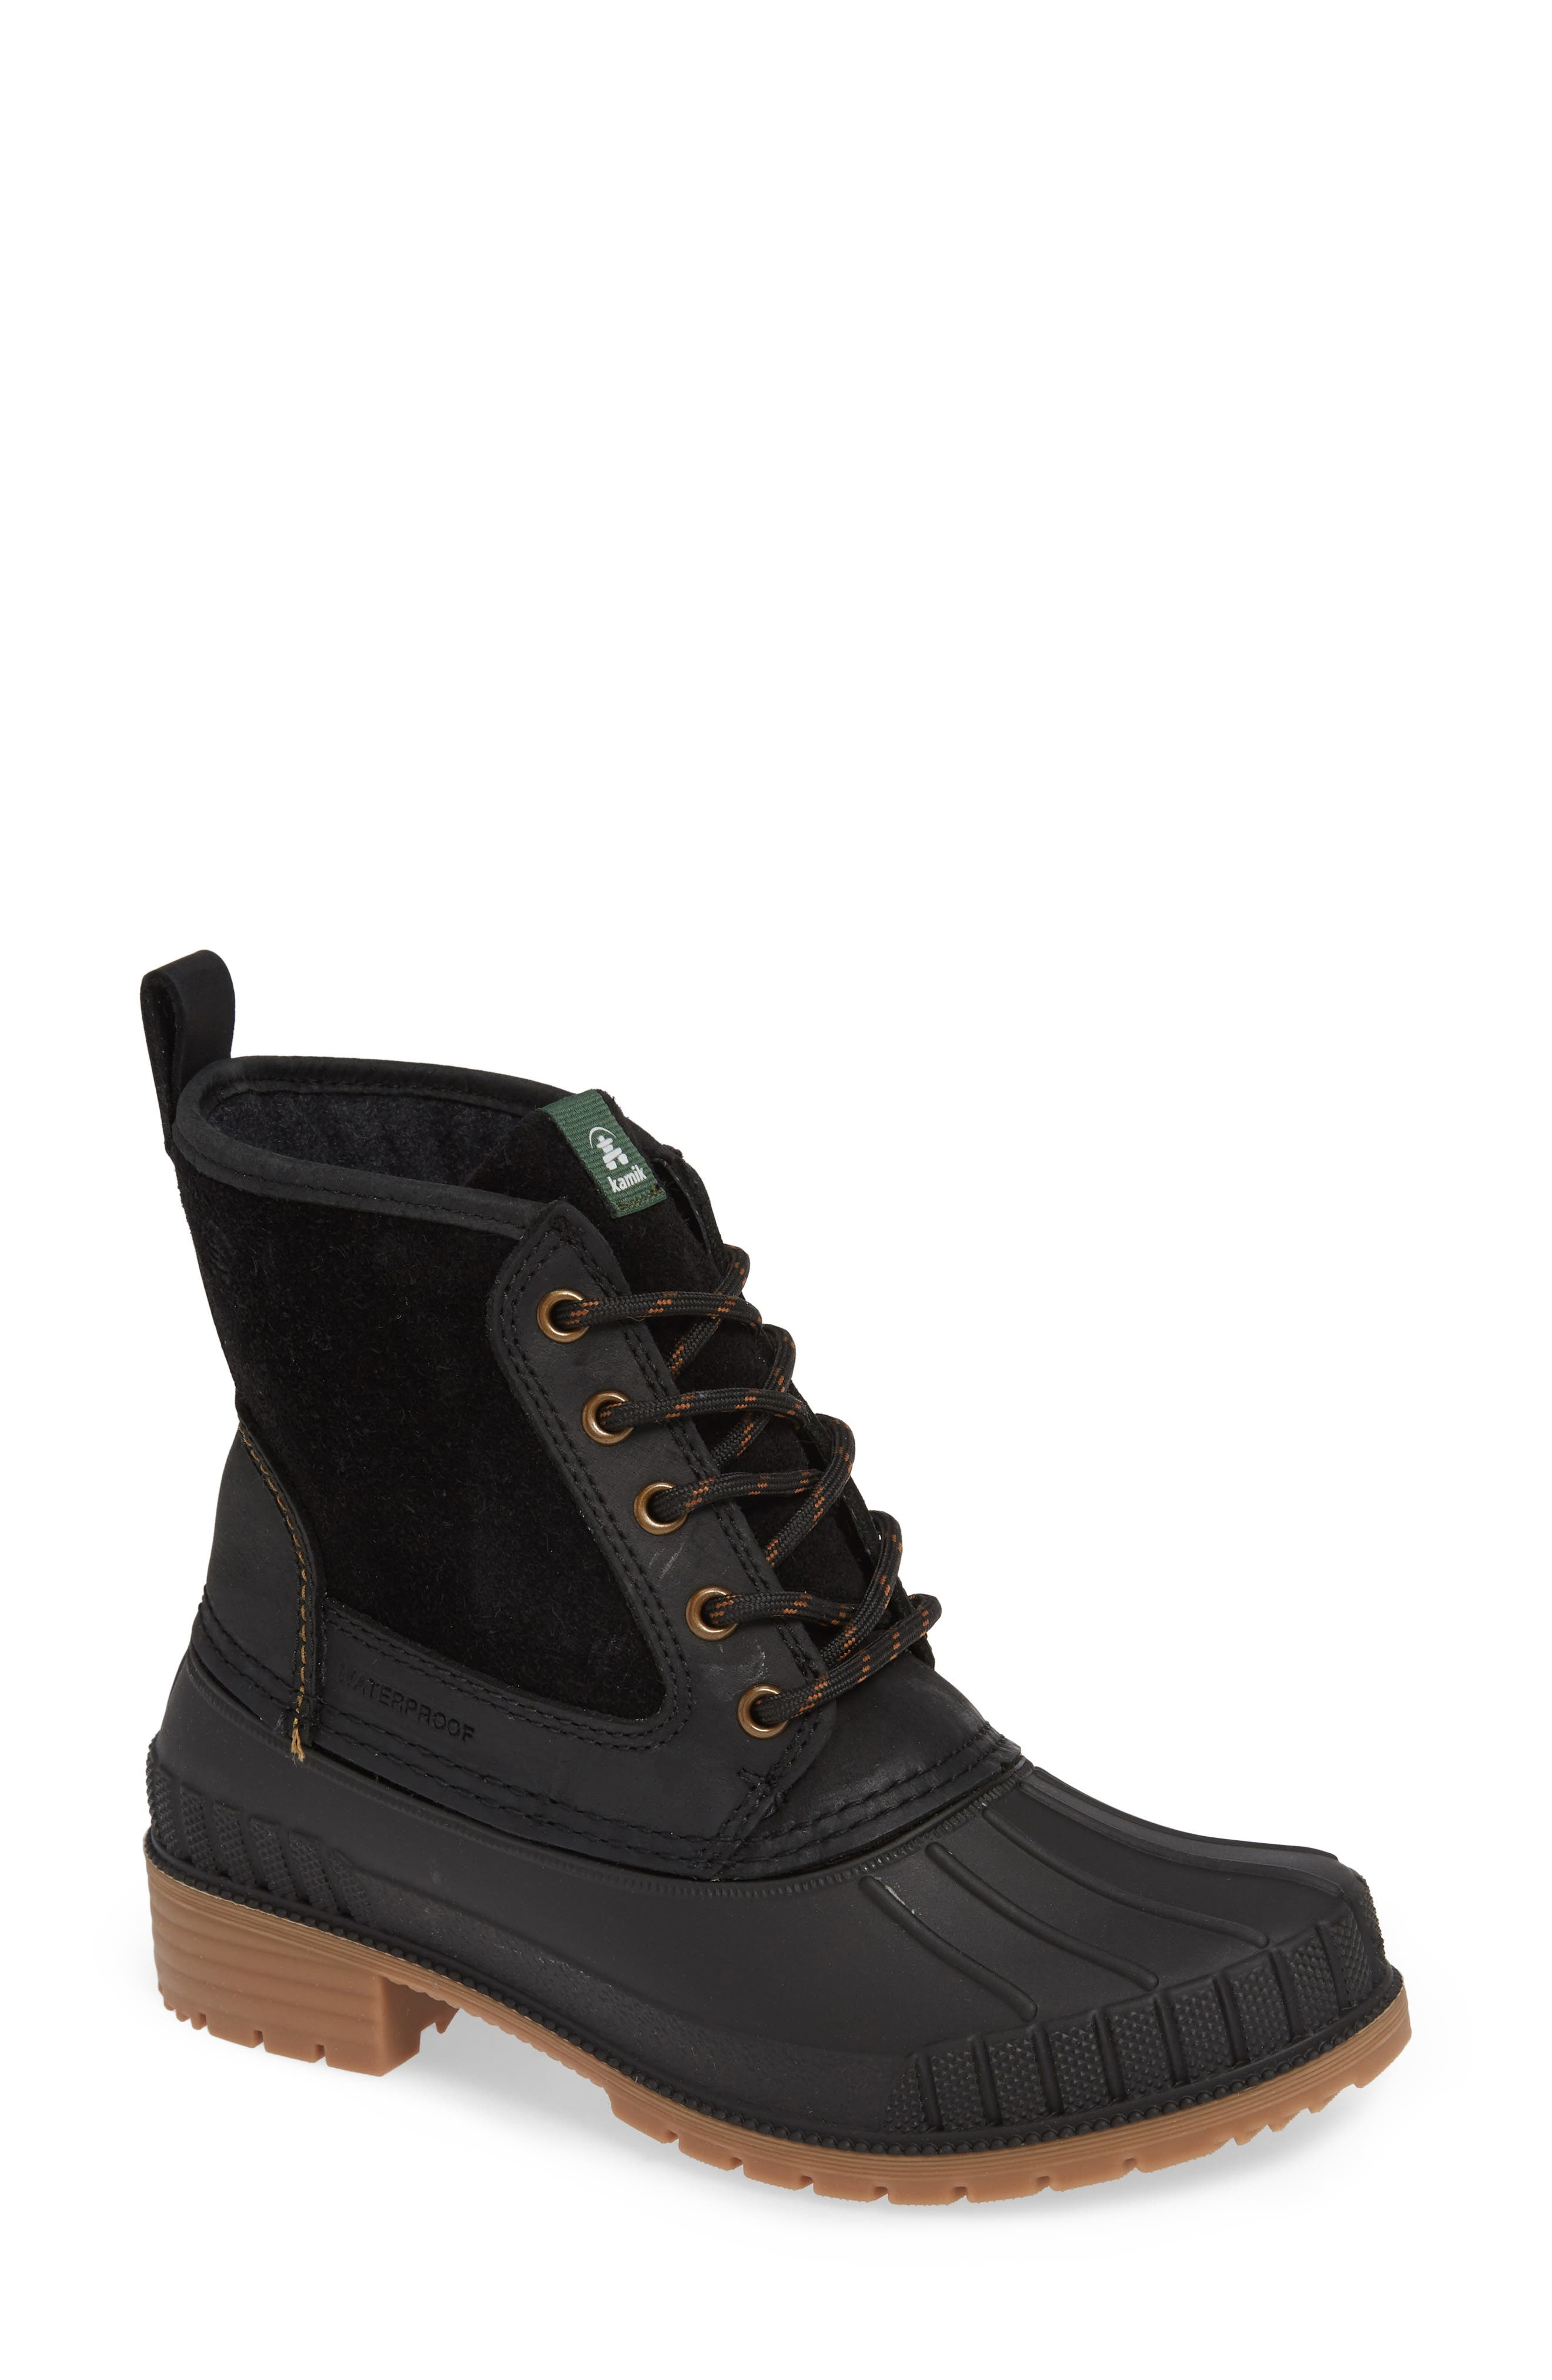 Sienna Waterproof Duck Boot,                             Main thumbnail 1, color,                             BLACK LEATHER